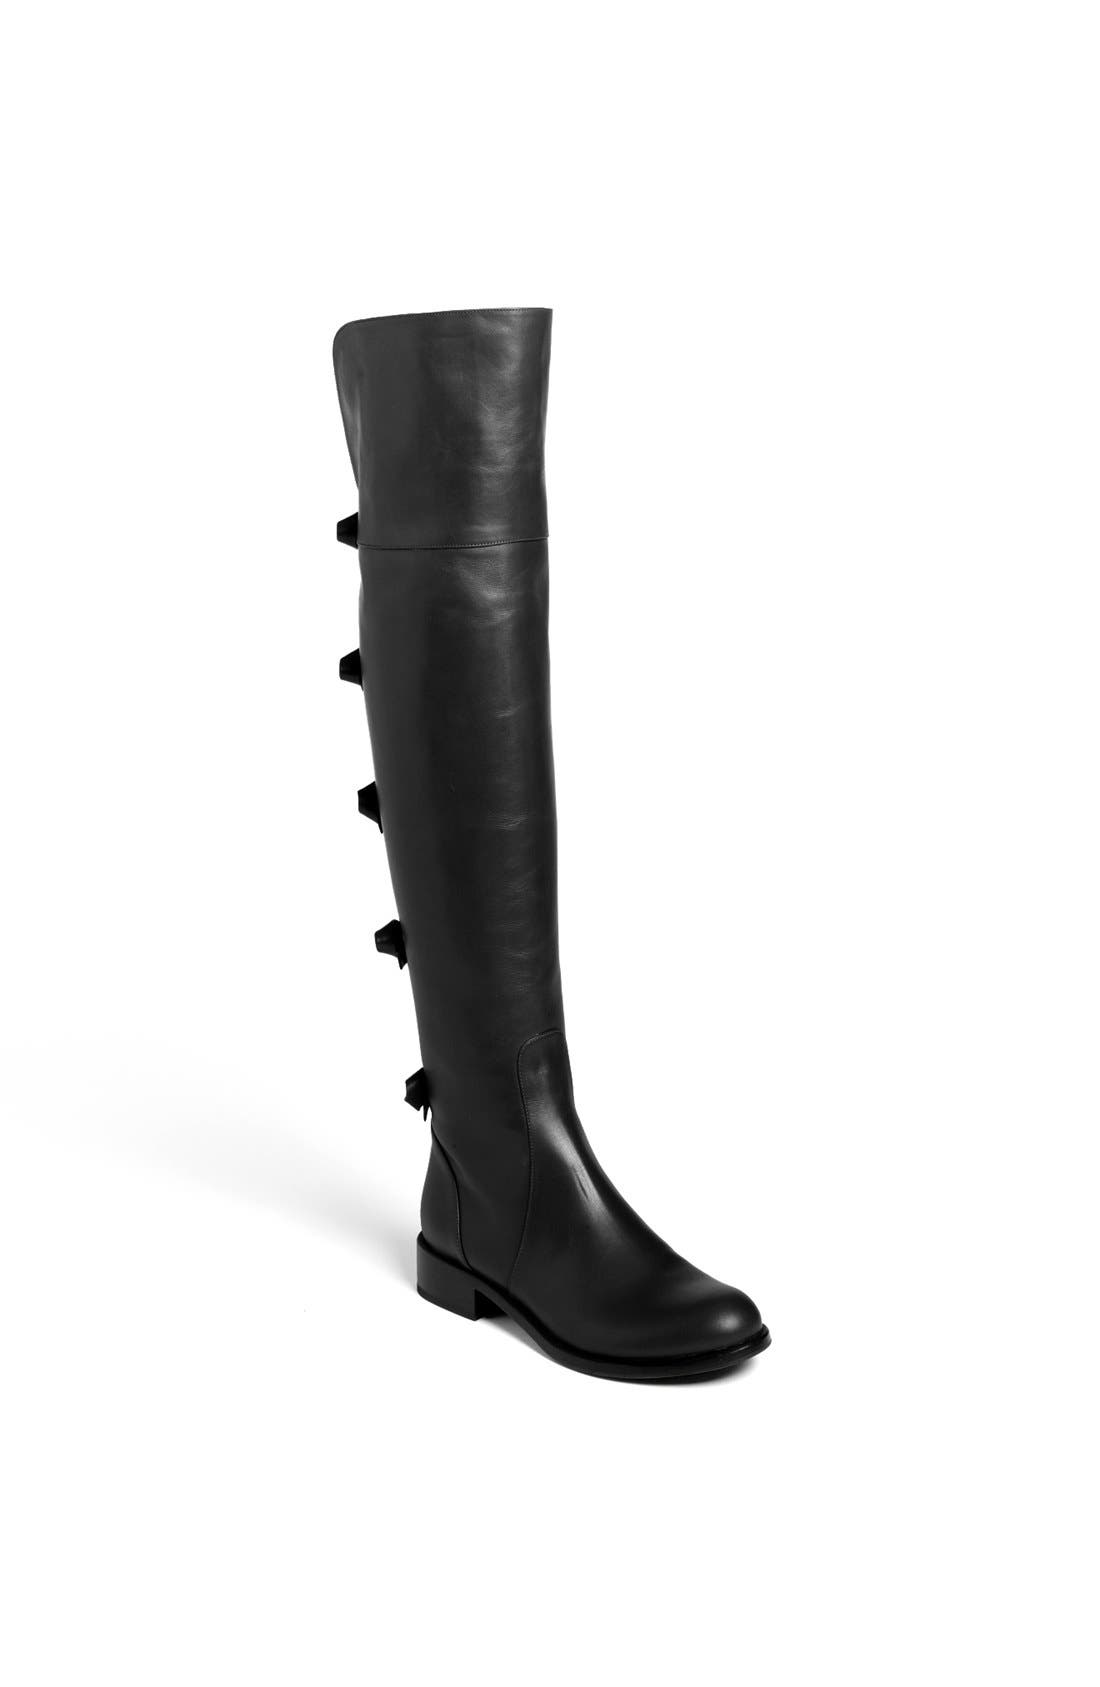 Alternate Image 1 Selected - VALENTINO GARAVANI Bow Over the Knee Boot